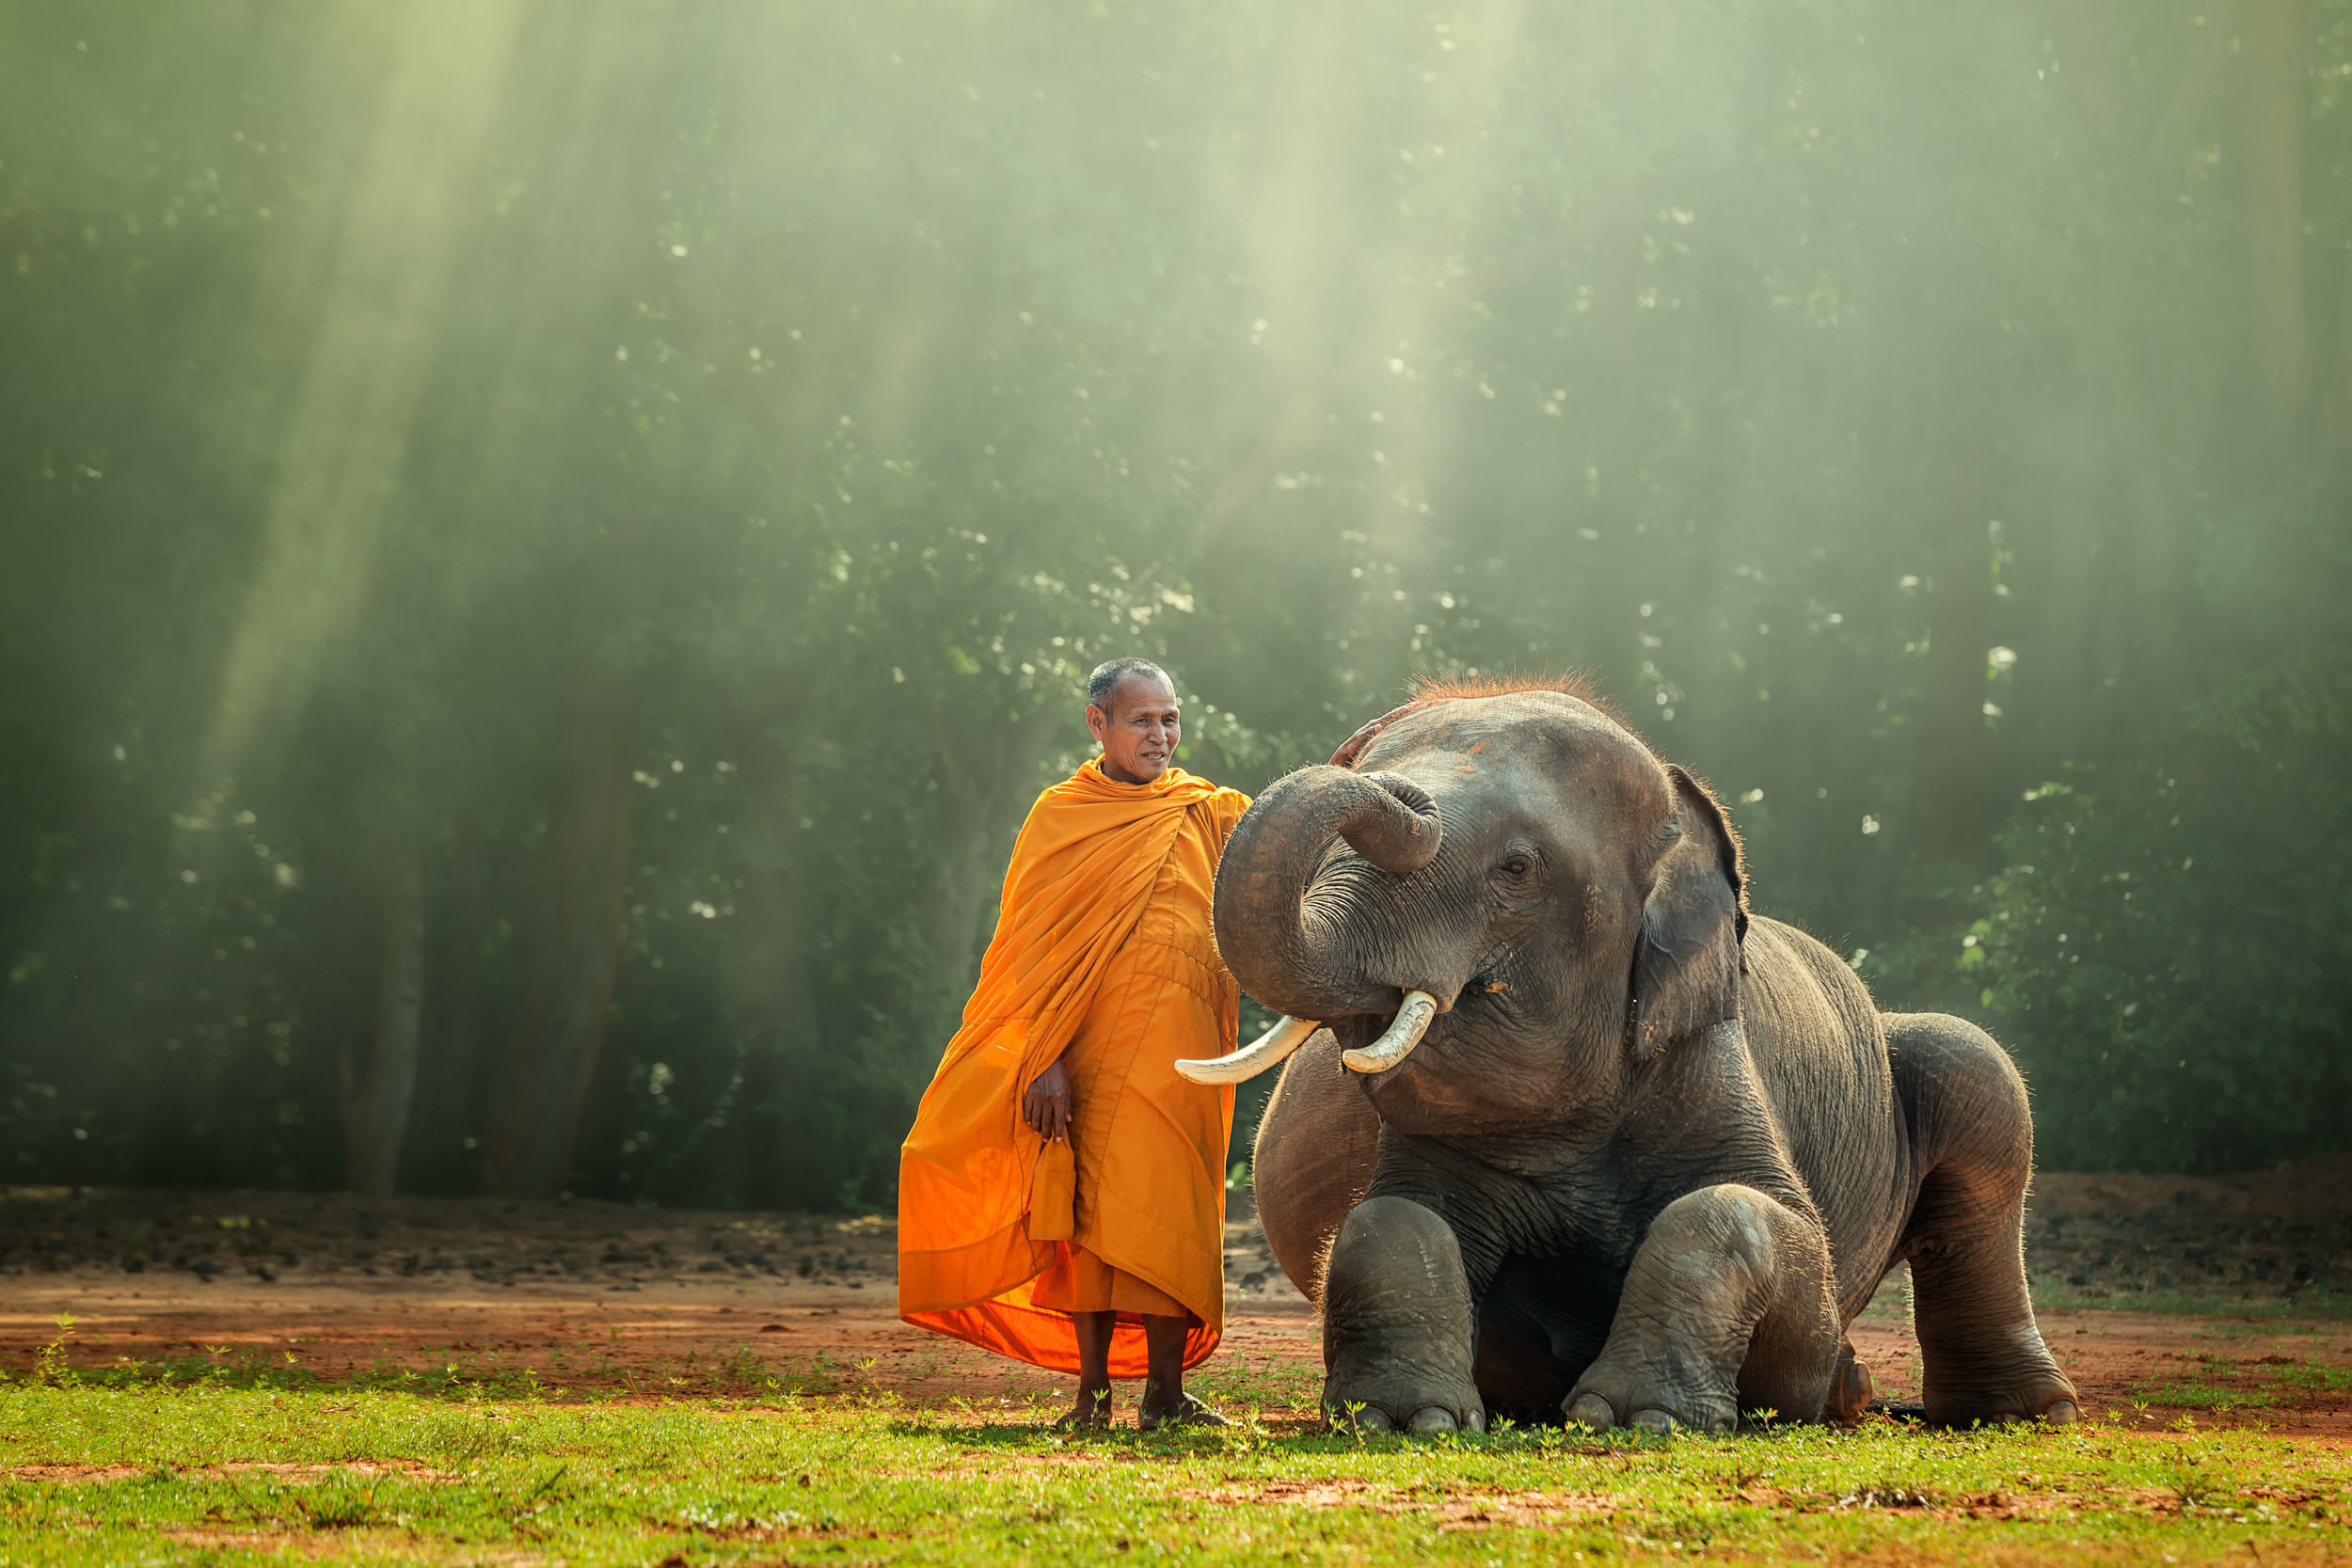 In India The Elephant Is A Symbol For Power Dignity Intelligence